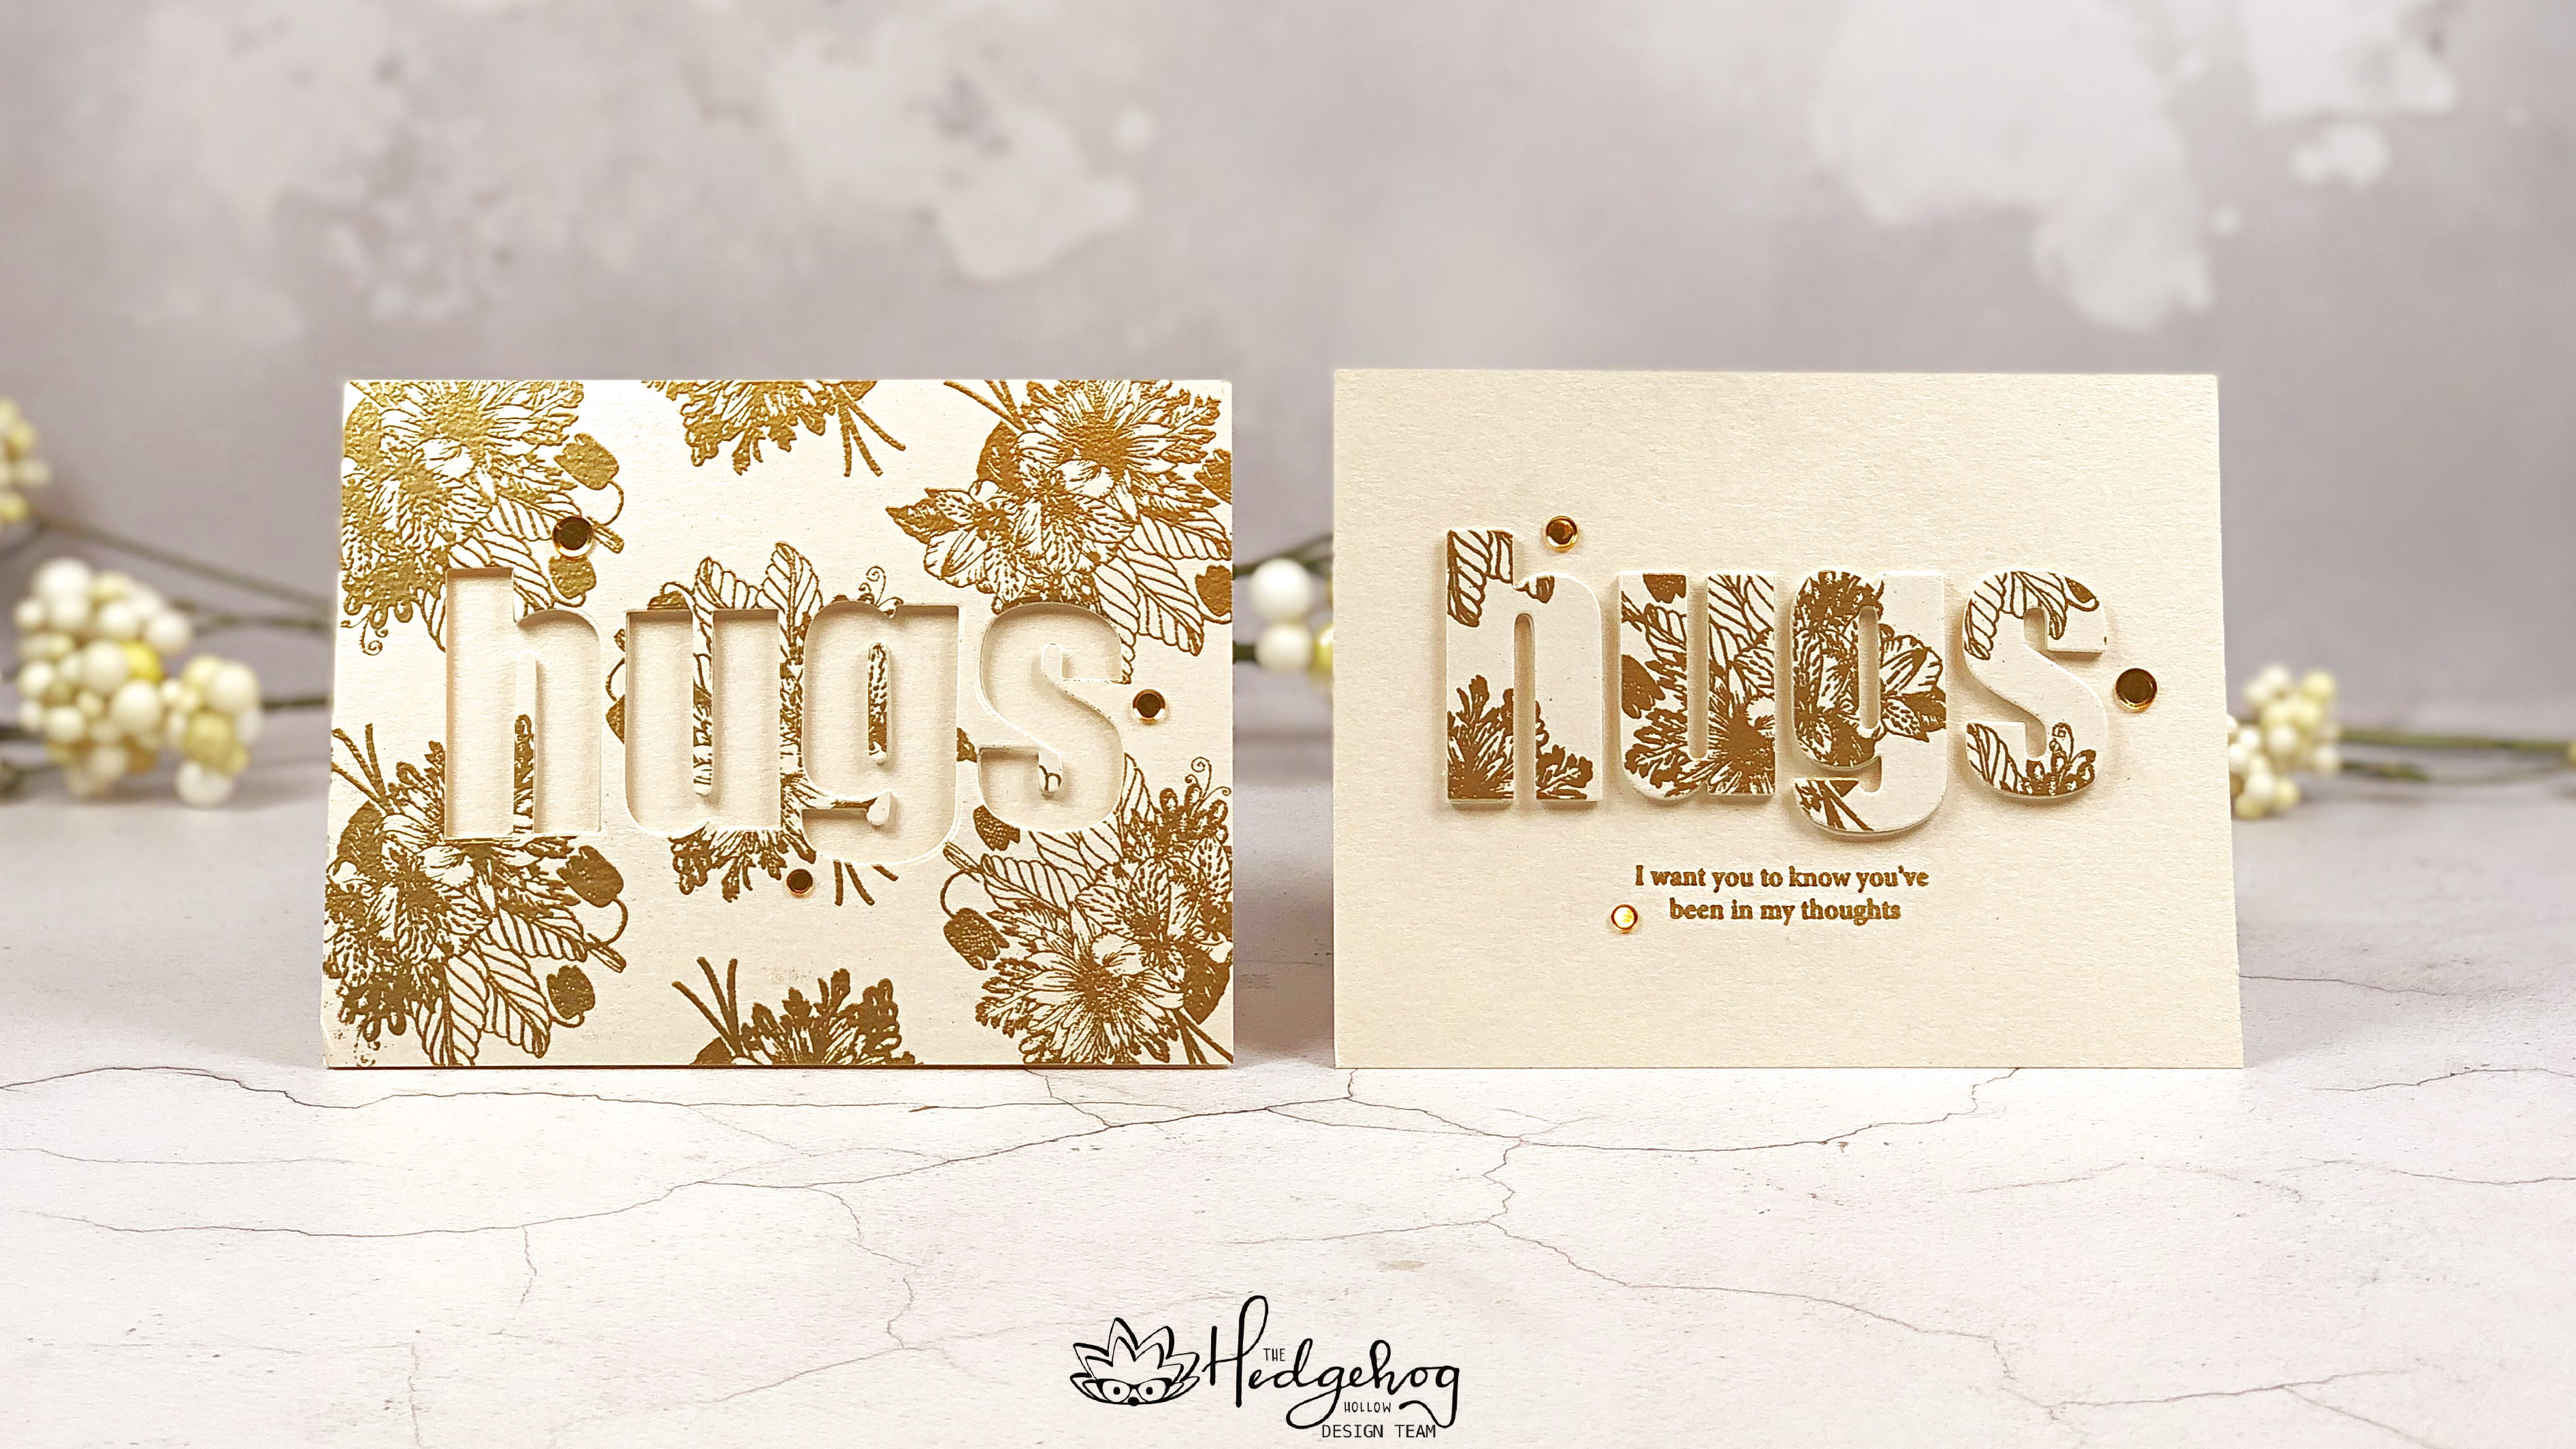 Floral Typography Twofer Card Designs